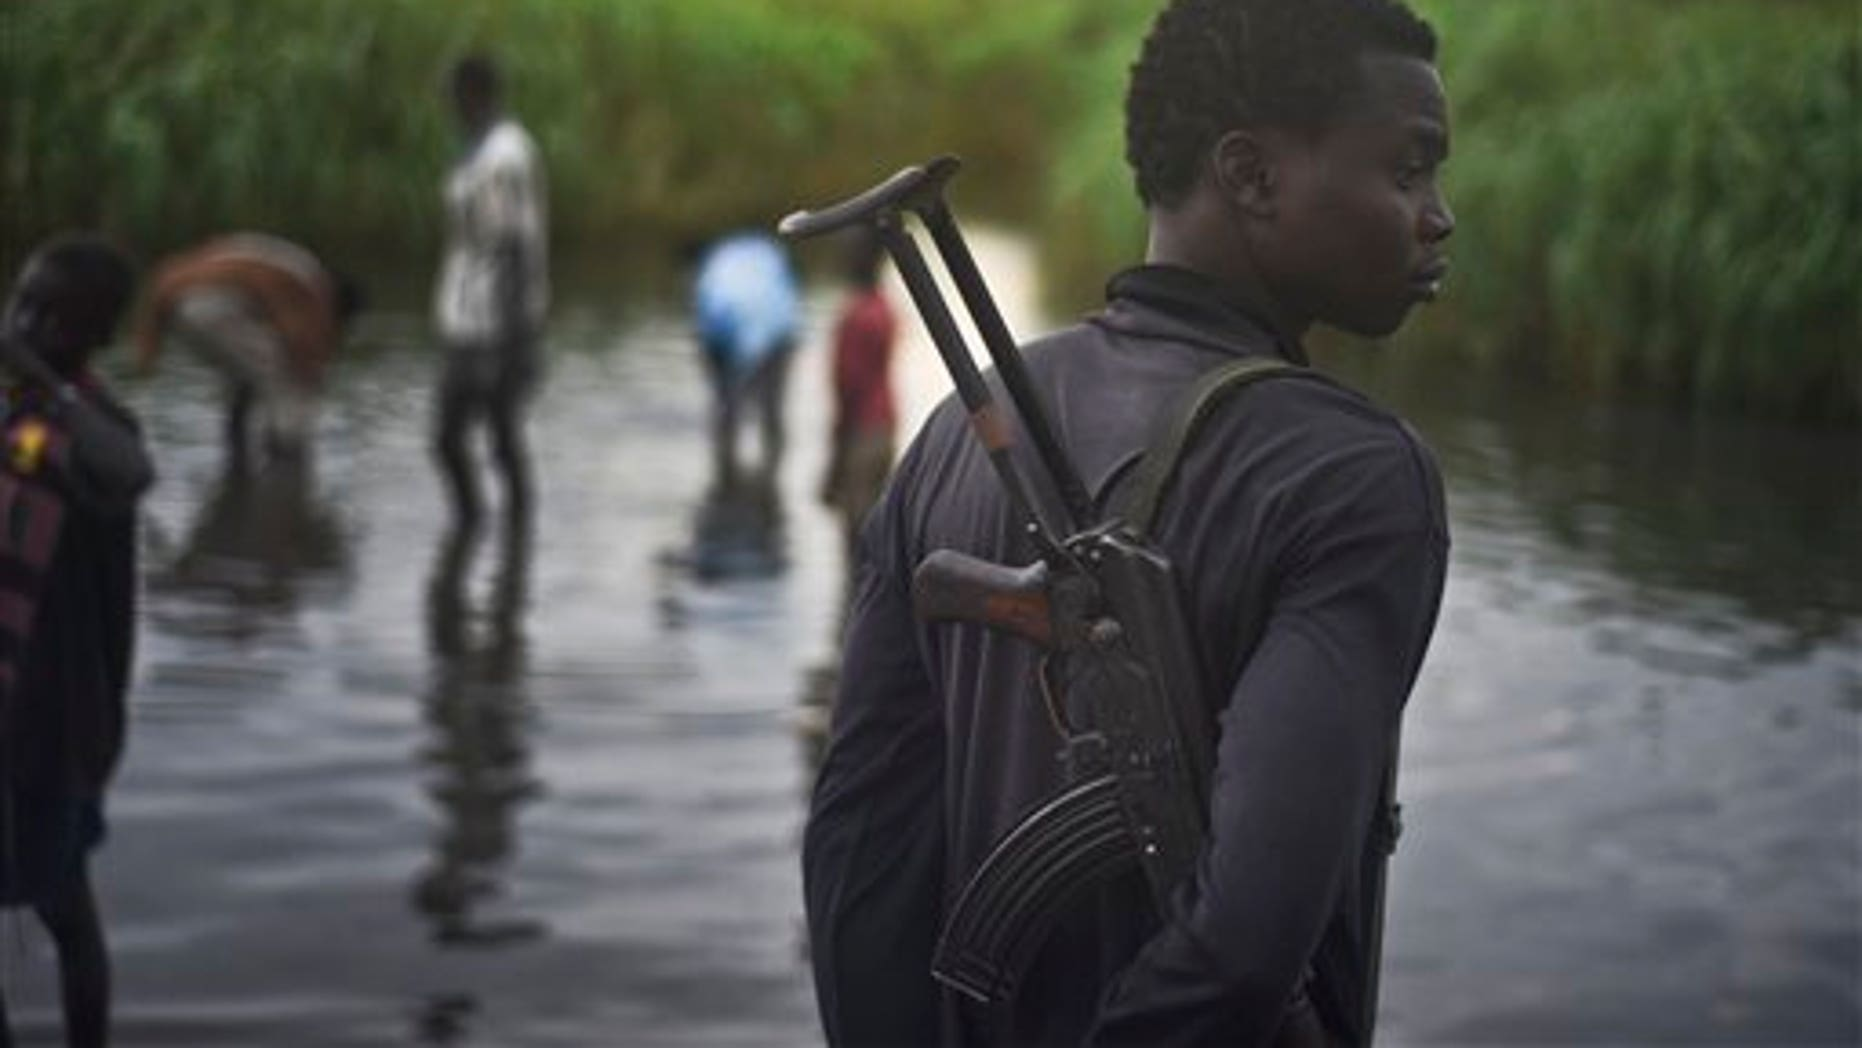 An unidentified man with a gun stands watch over displaced people who have taken shelter from fighting, in a rebel-held part of Leer county in South Sudan Oct. 12. (AP Photo/Jason Patinkin)